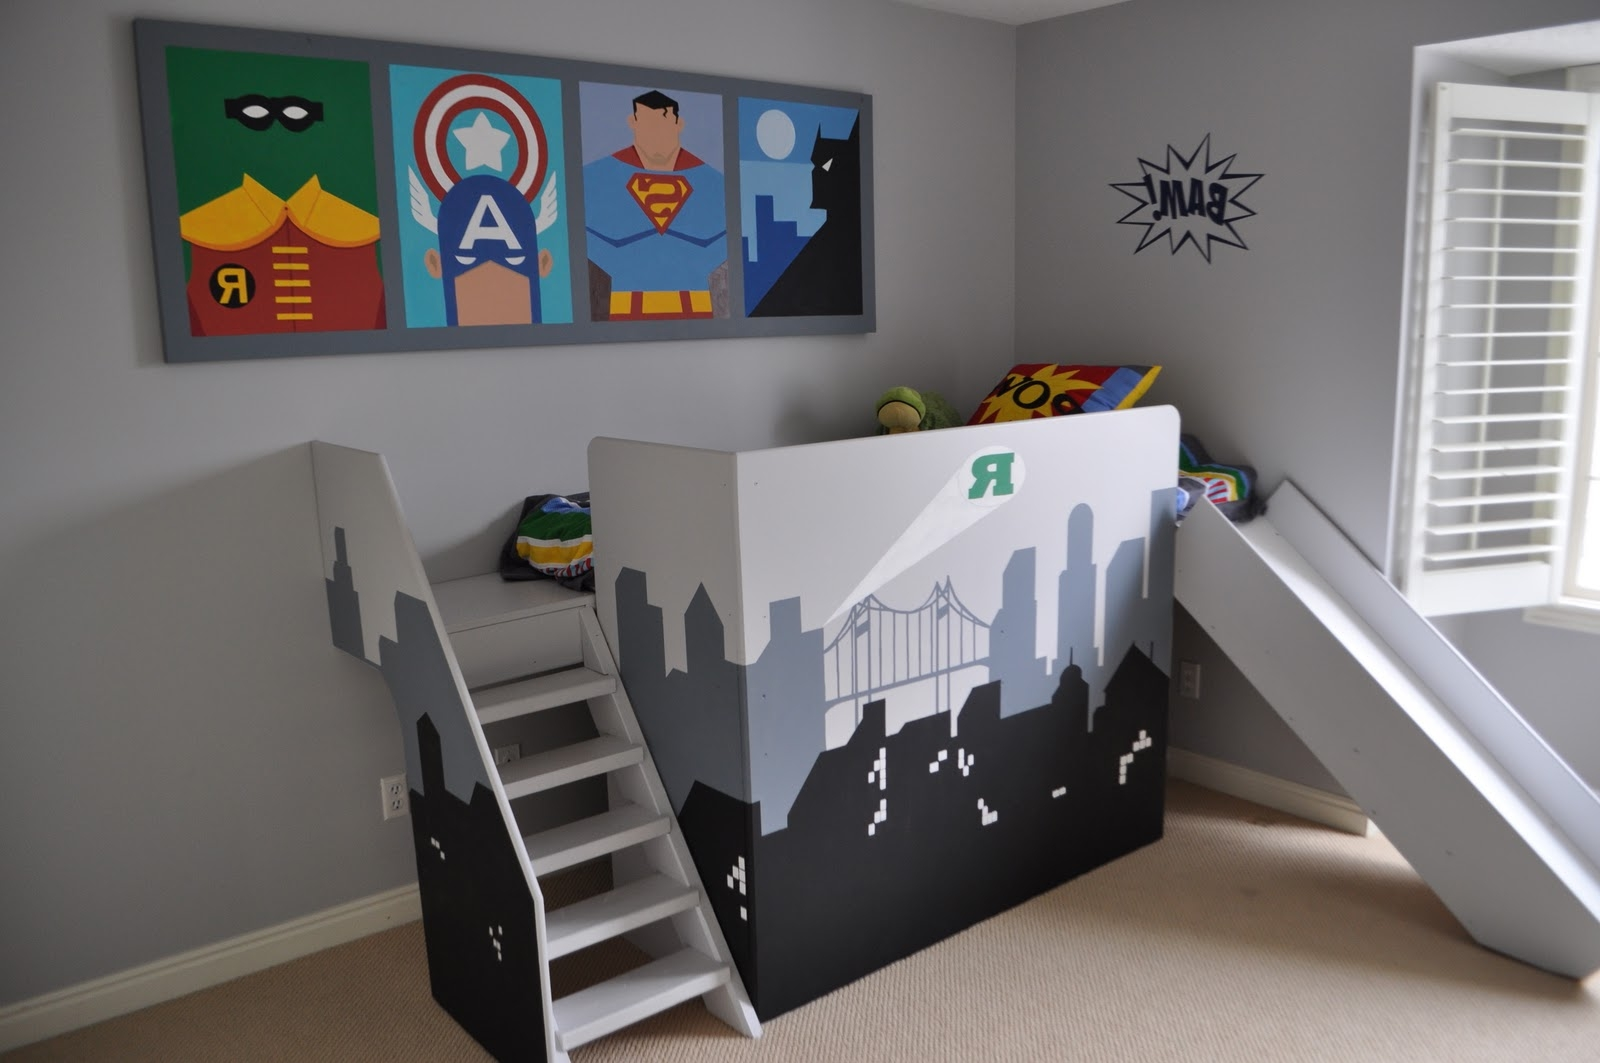 Beau Superhero Themed Bedroom With Unusual Boys Bunk Beds And Appealing Wall Art  On Grey Painted Wall